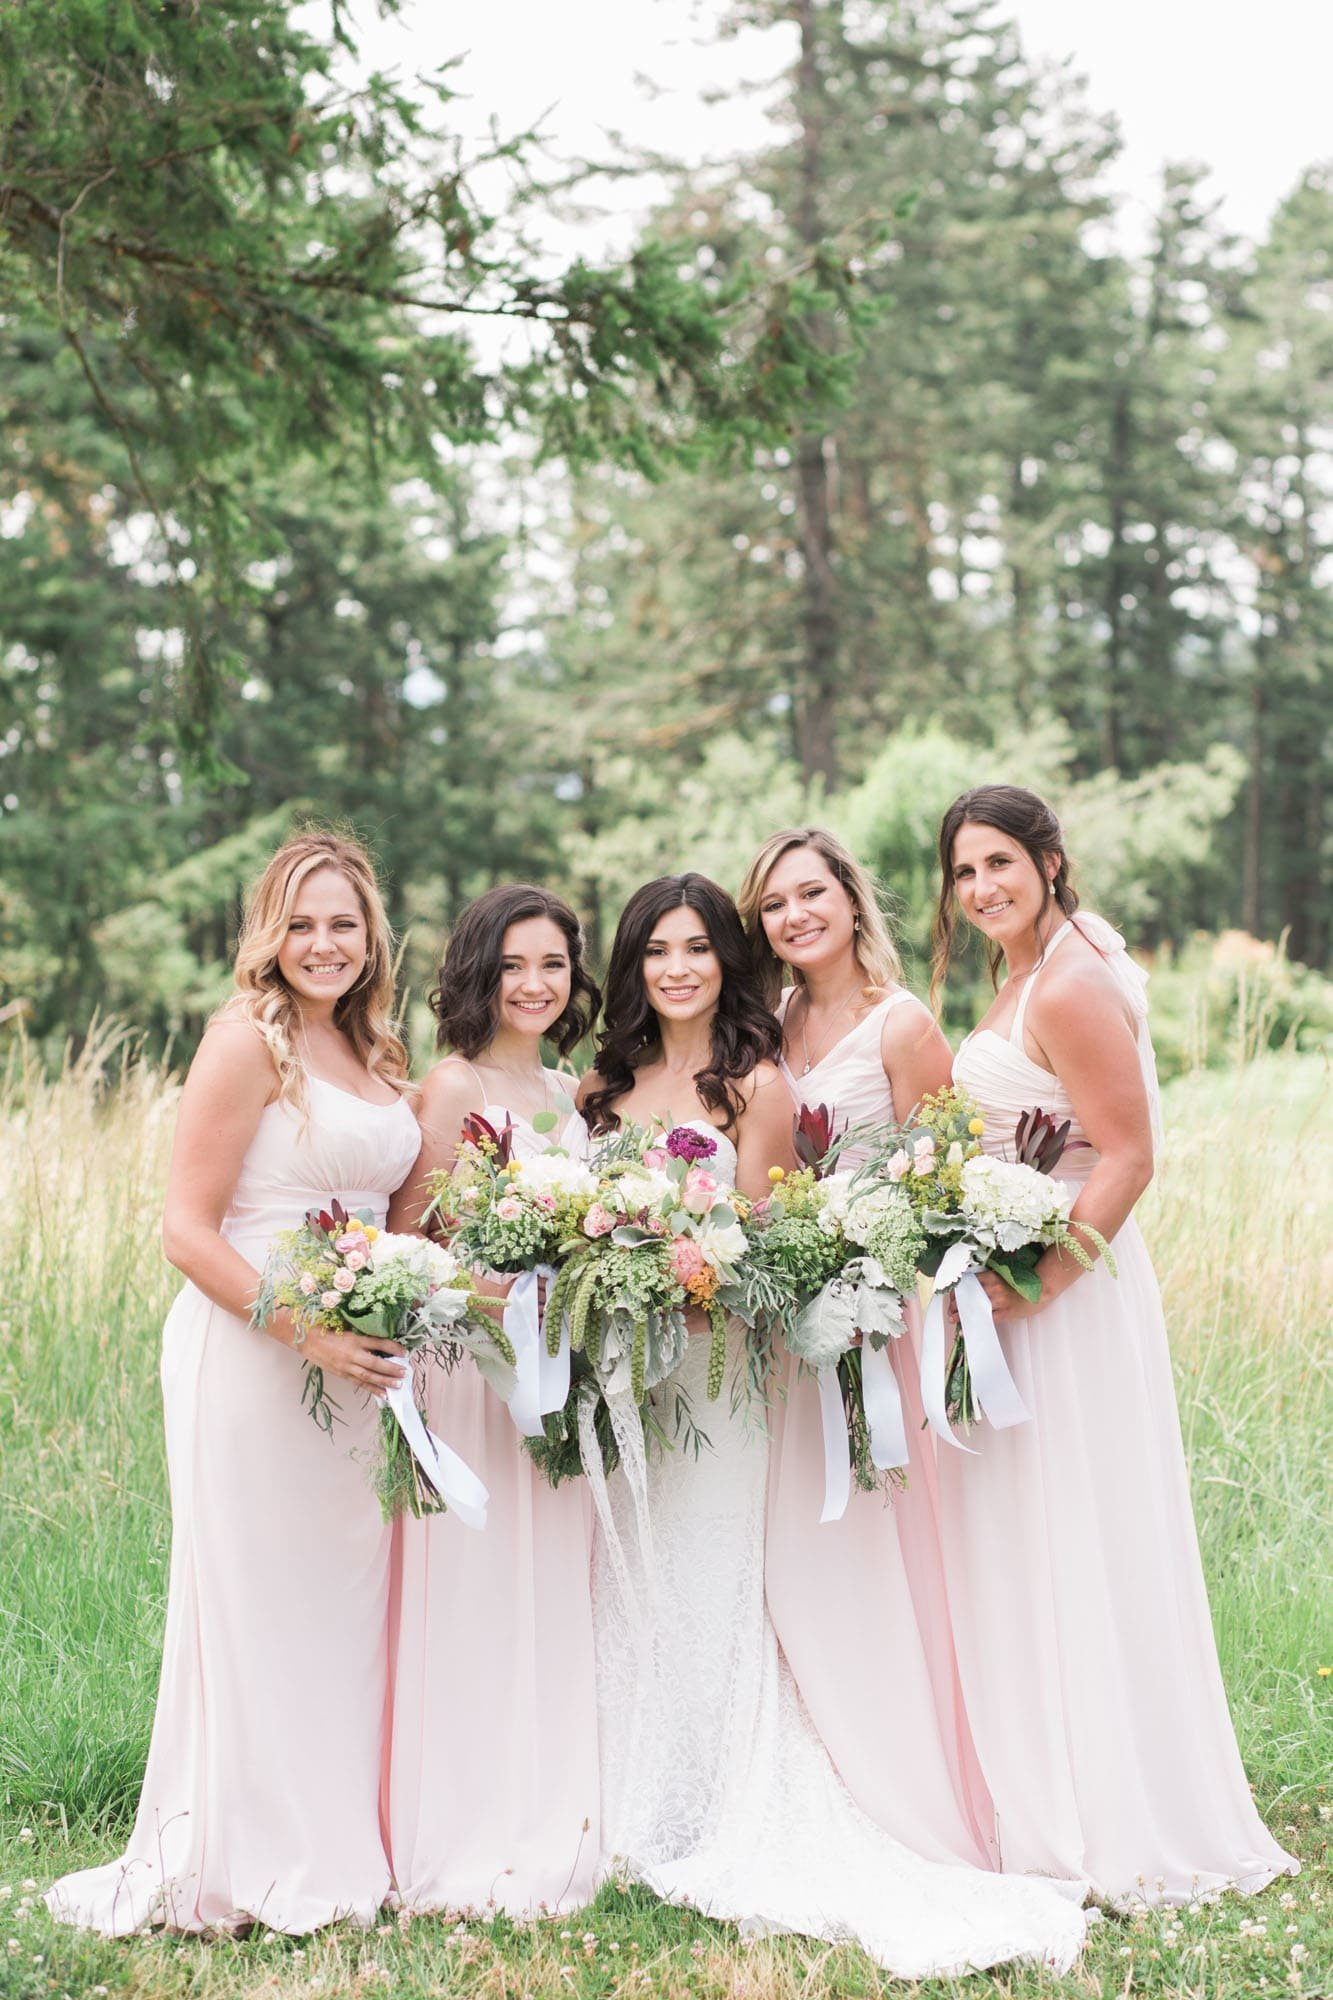 Bridesmaids pose for photos at an outdoor Oregon wedding venue